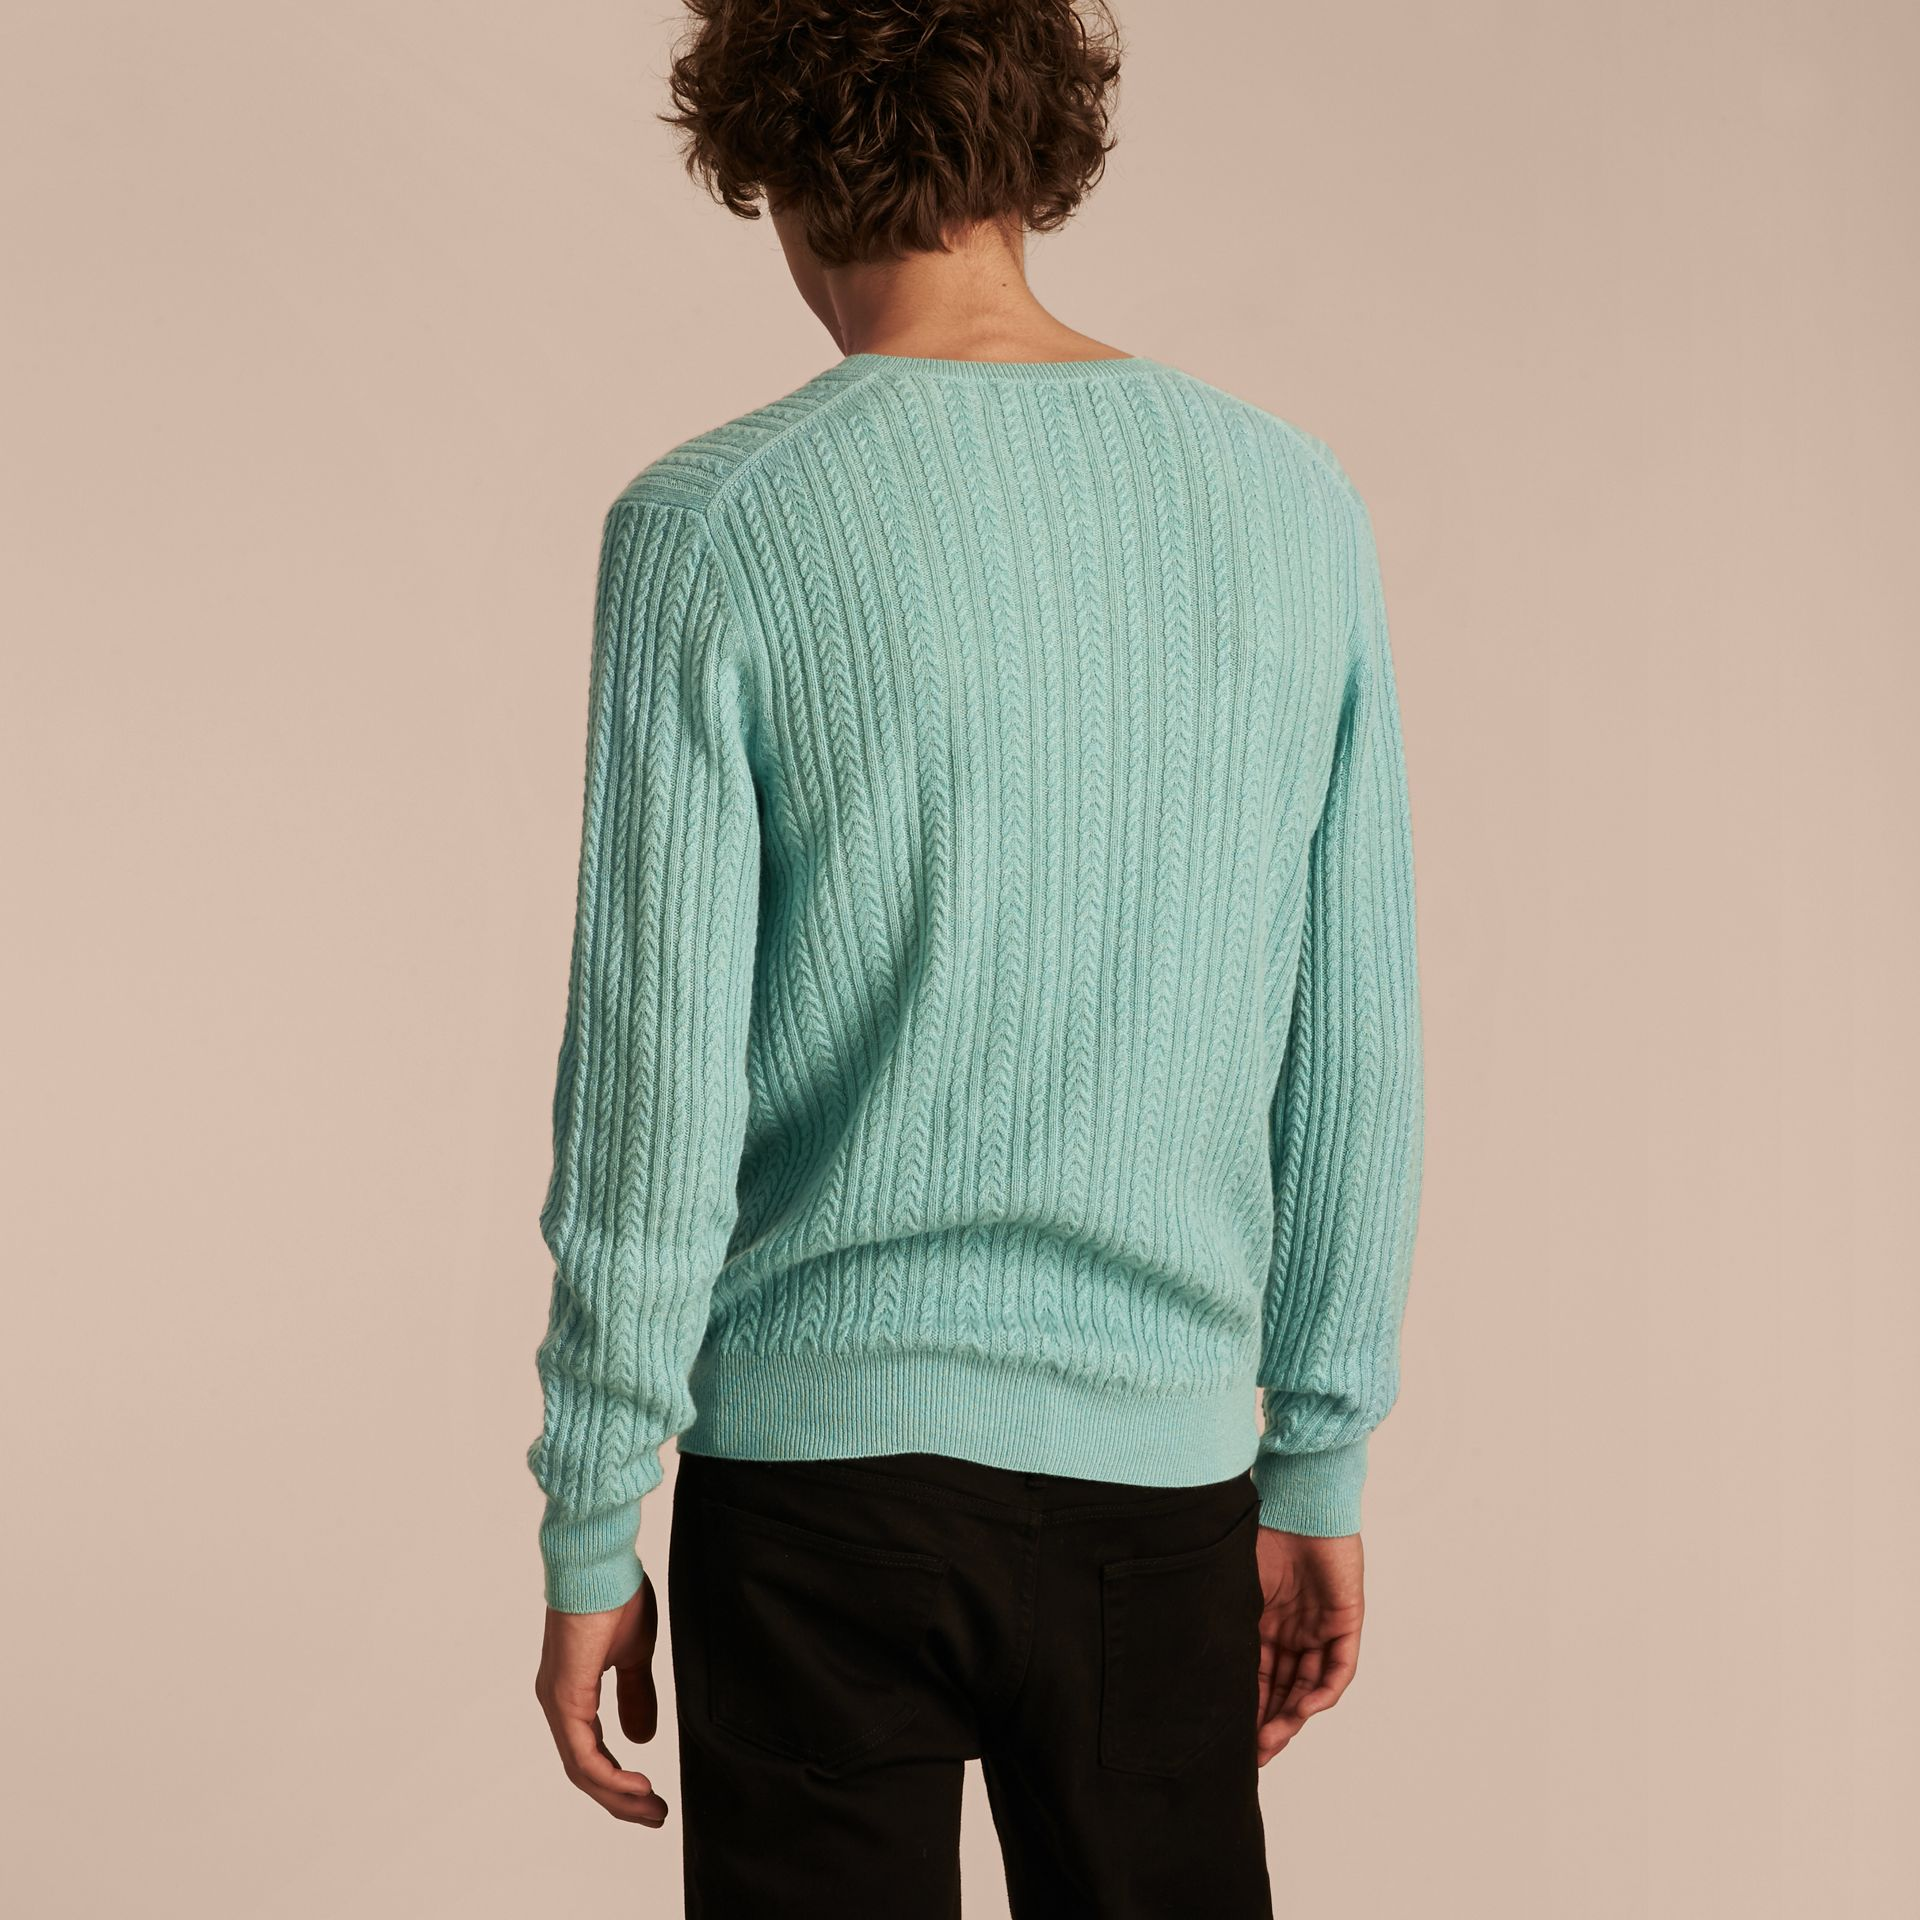 Pale peridot blue Aran Knit Cashmere Sweater Pale Peridot Blue - gallery image 3